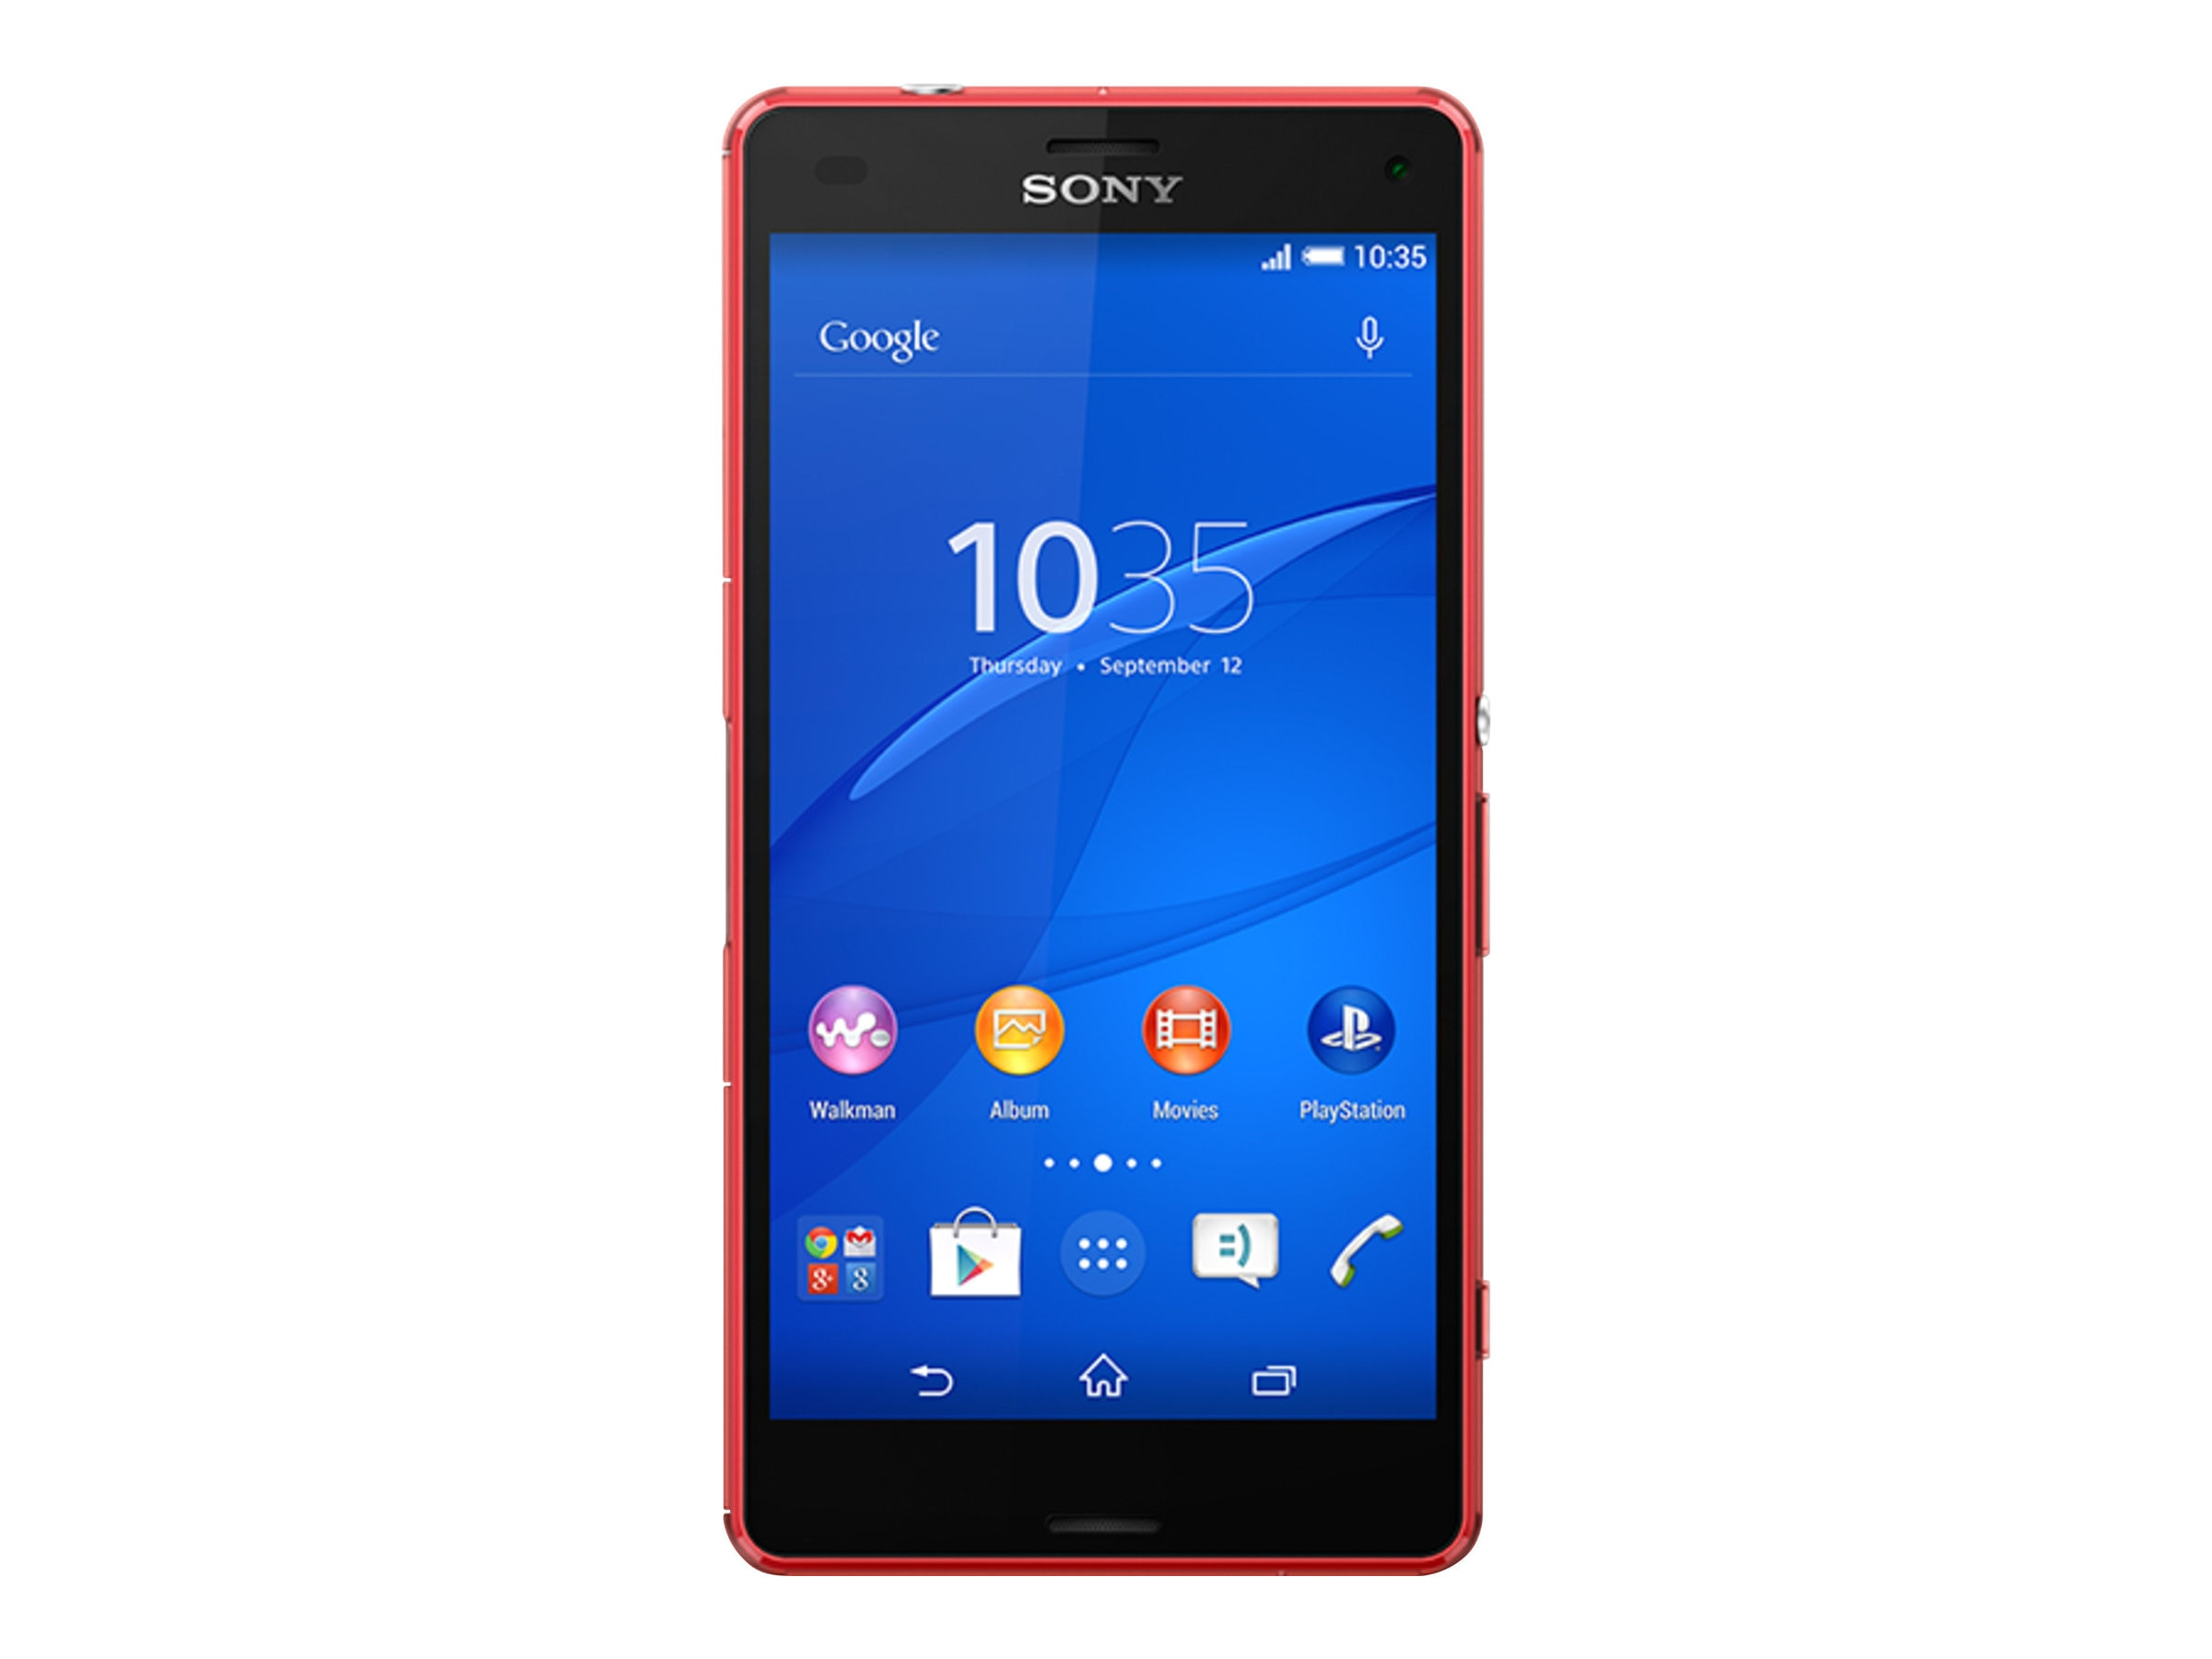 Sony XPeria Z3 Compact LTE D5803 4.6 2.5GHZ 4CR 16GB 20.7MP NFC Phone - Green, 1290-0542, 17964501, Cellular Phones